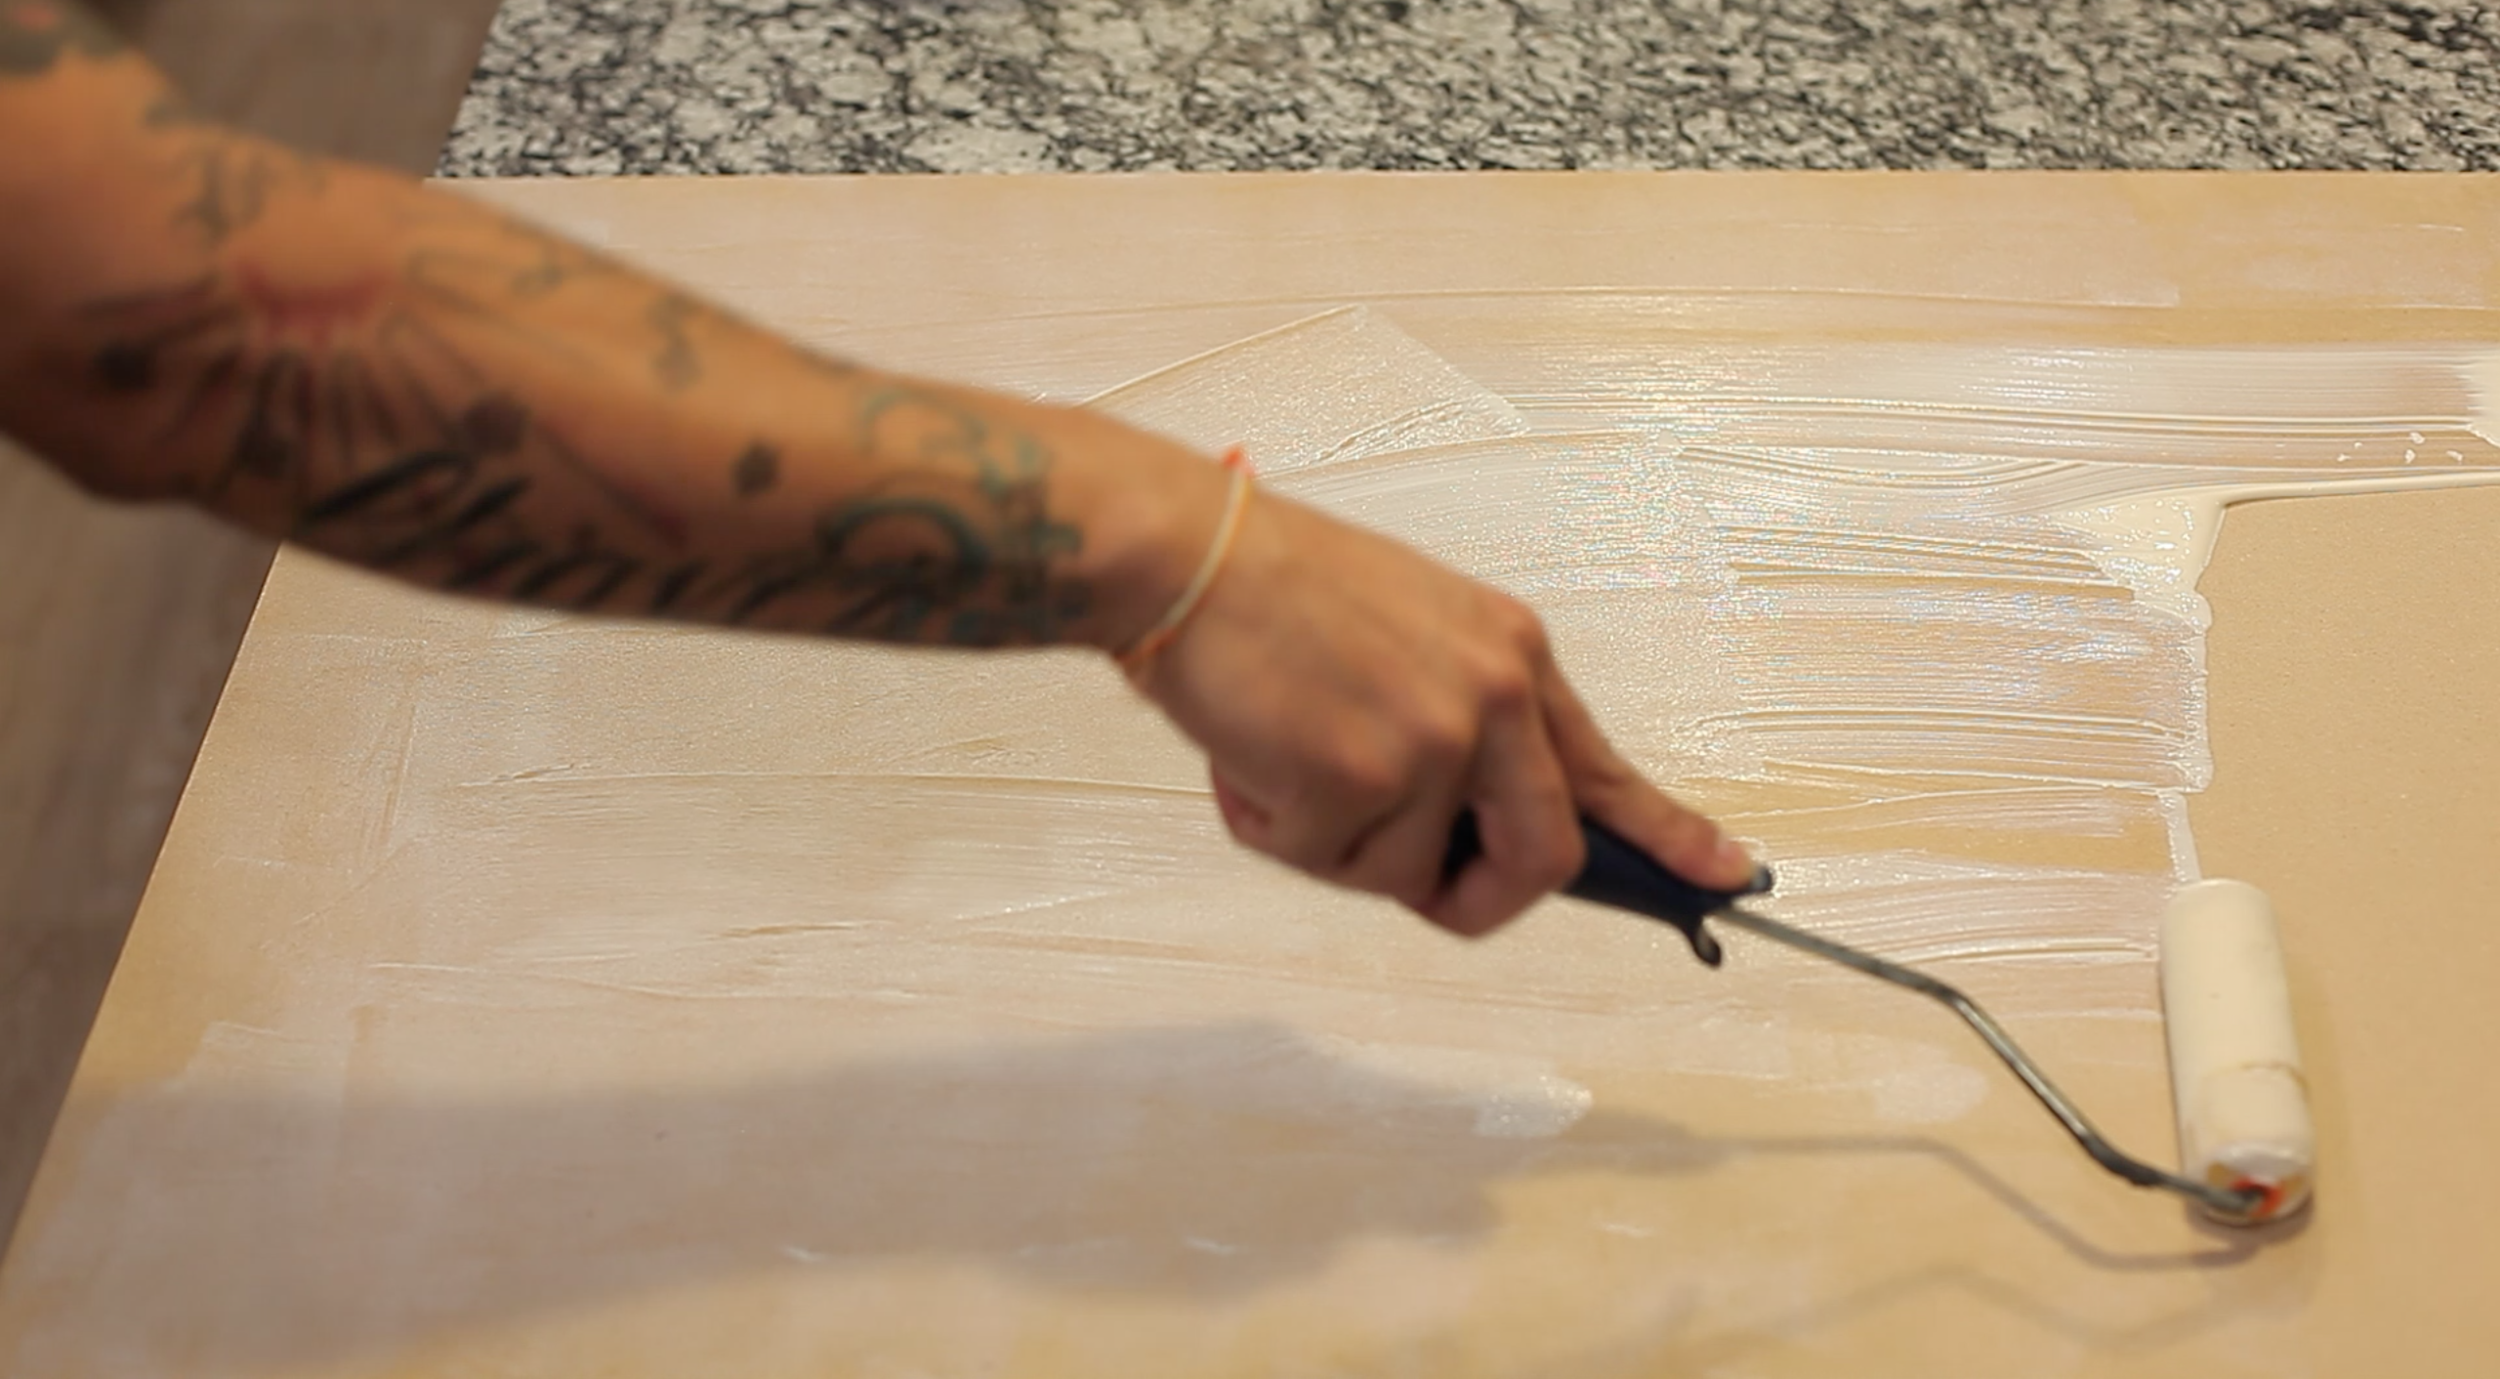 Using your paint roller, apply the adhesive evenly. After applying the adhesive, let it dry for about 3-5minutes. Don't be afraid of the adhesive drying up,It will bond better with the cork.